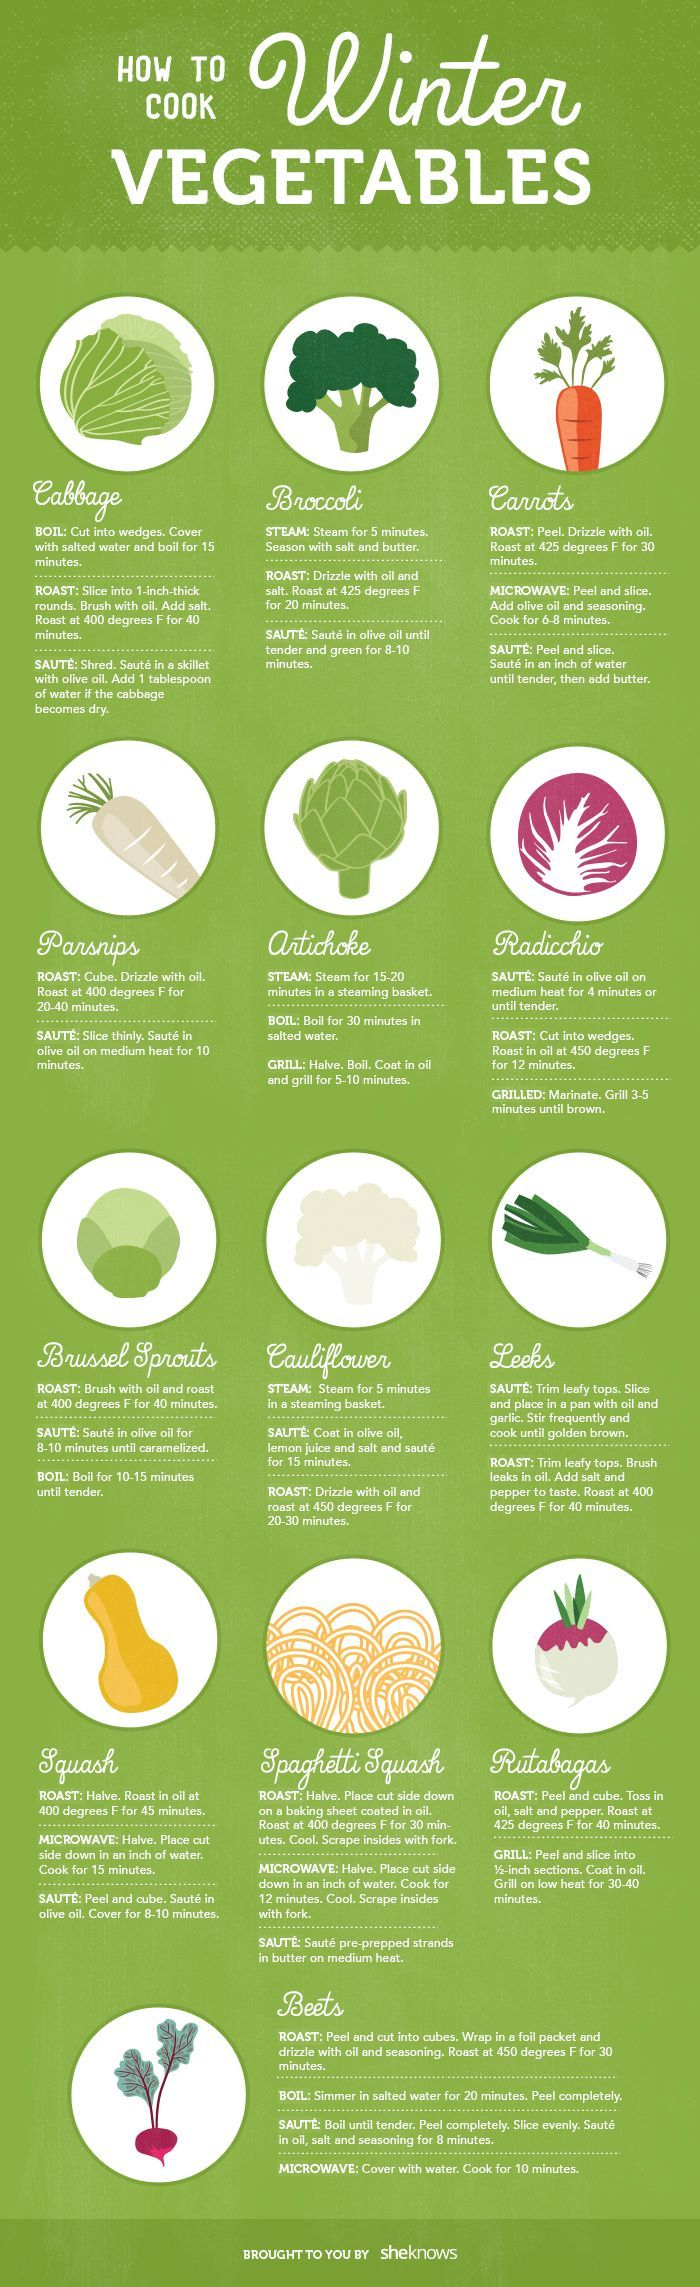 How to cook winter vegetables INFOGRAPHIC From artichokes to rutabagas, the best ways to cook each winter vegetable: